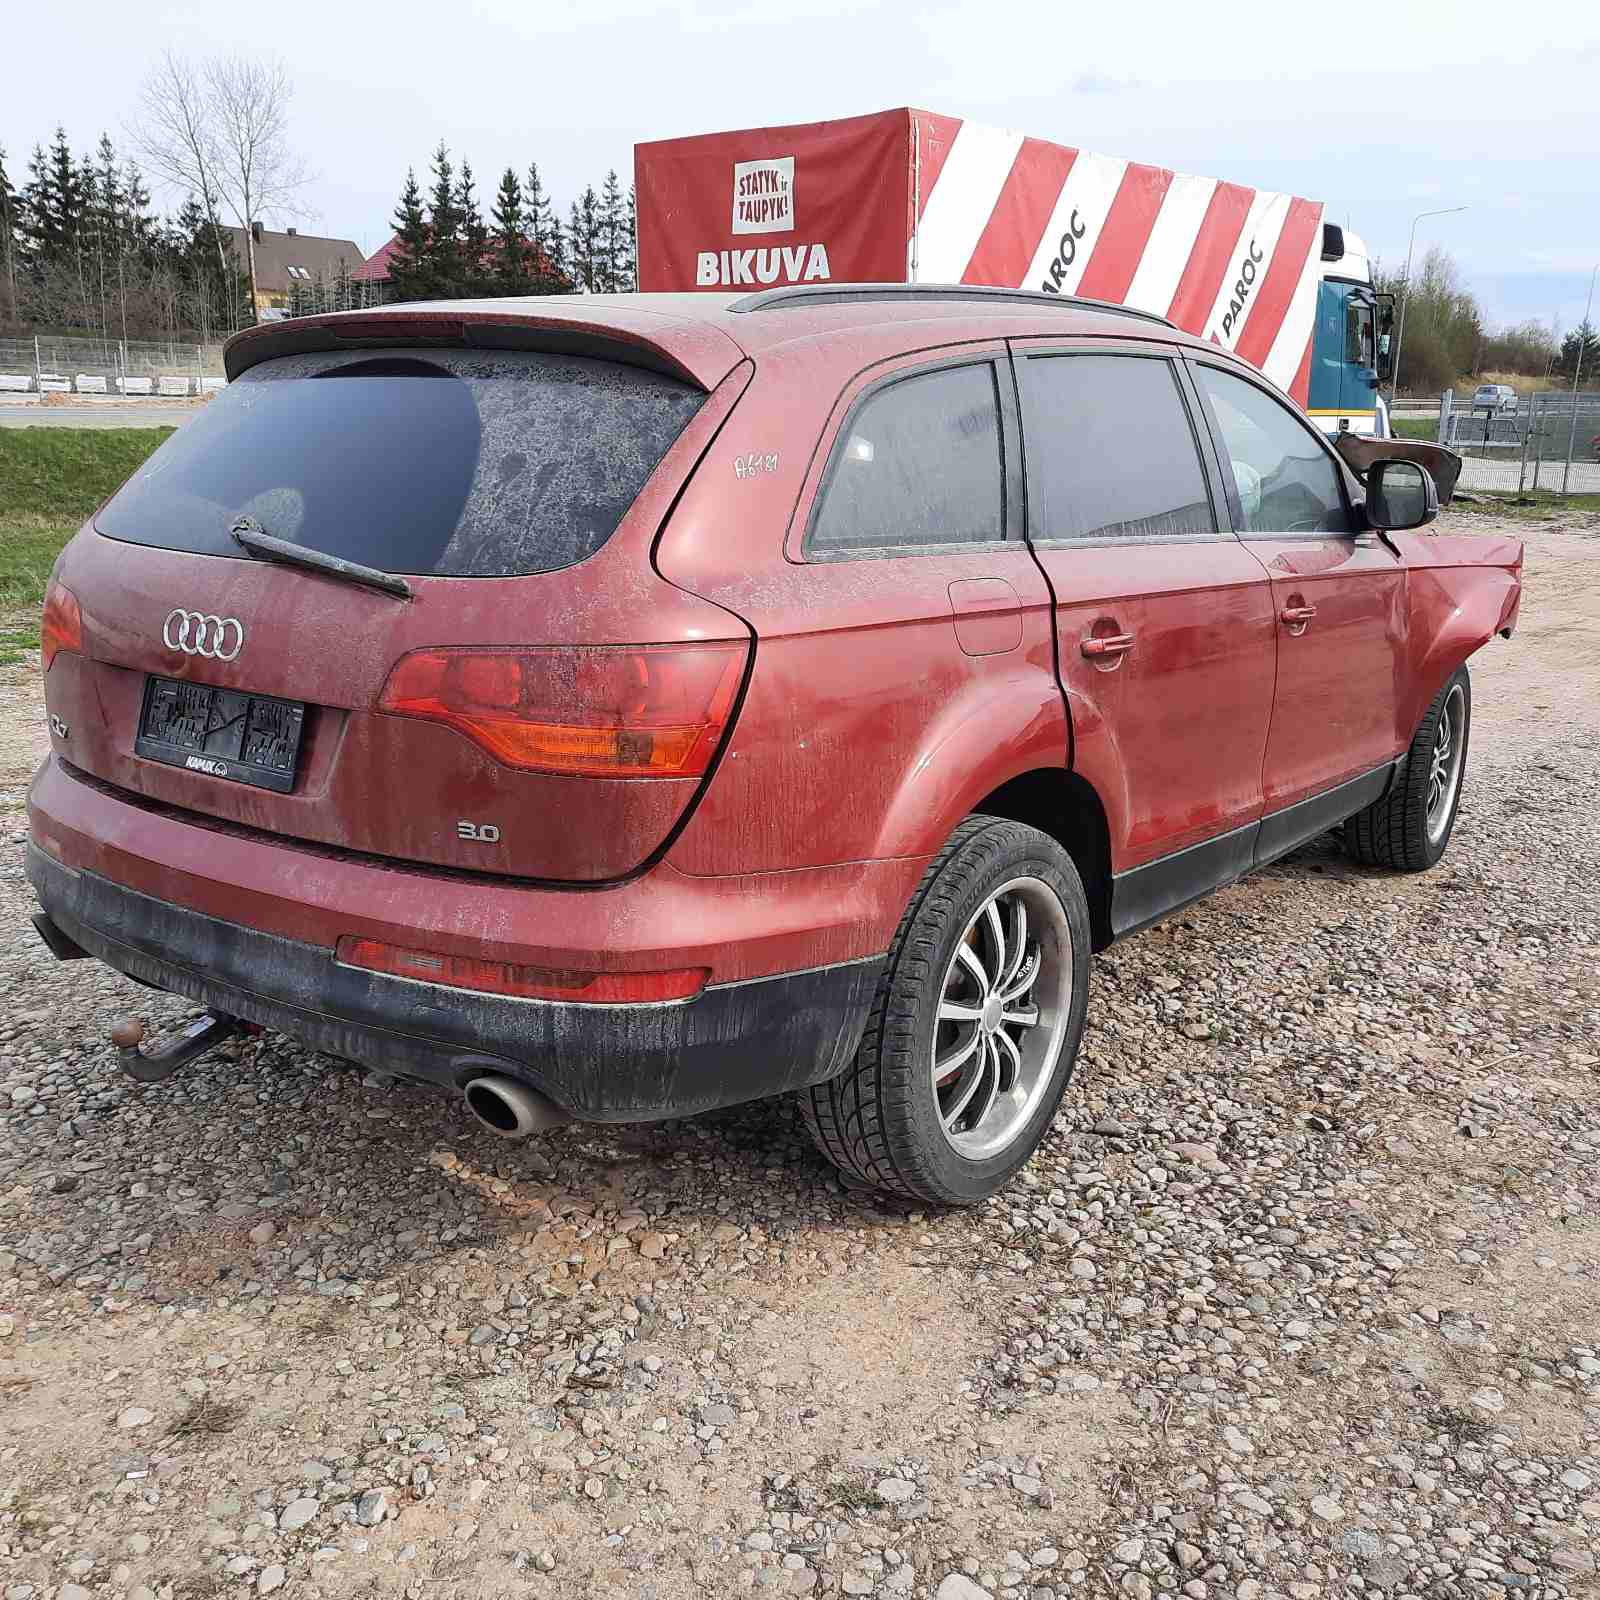 Used Car Parts Foto 7 Audi Q7 2006 3.0 Automatic Jeep 4/5 d. Red 2021-4-29 A6181